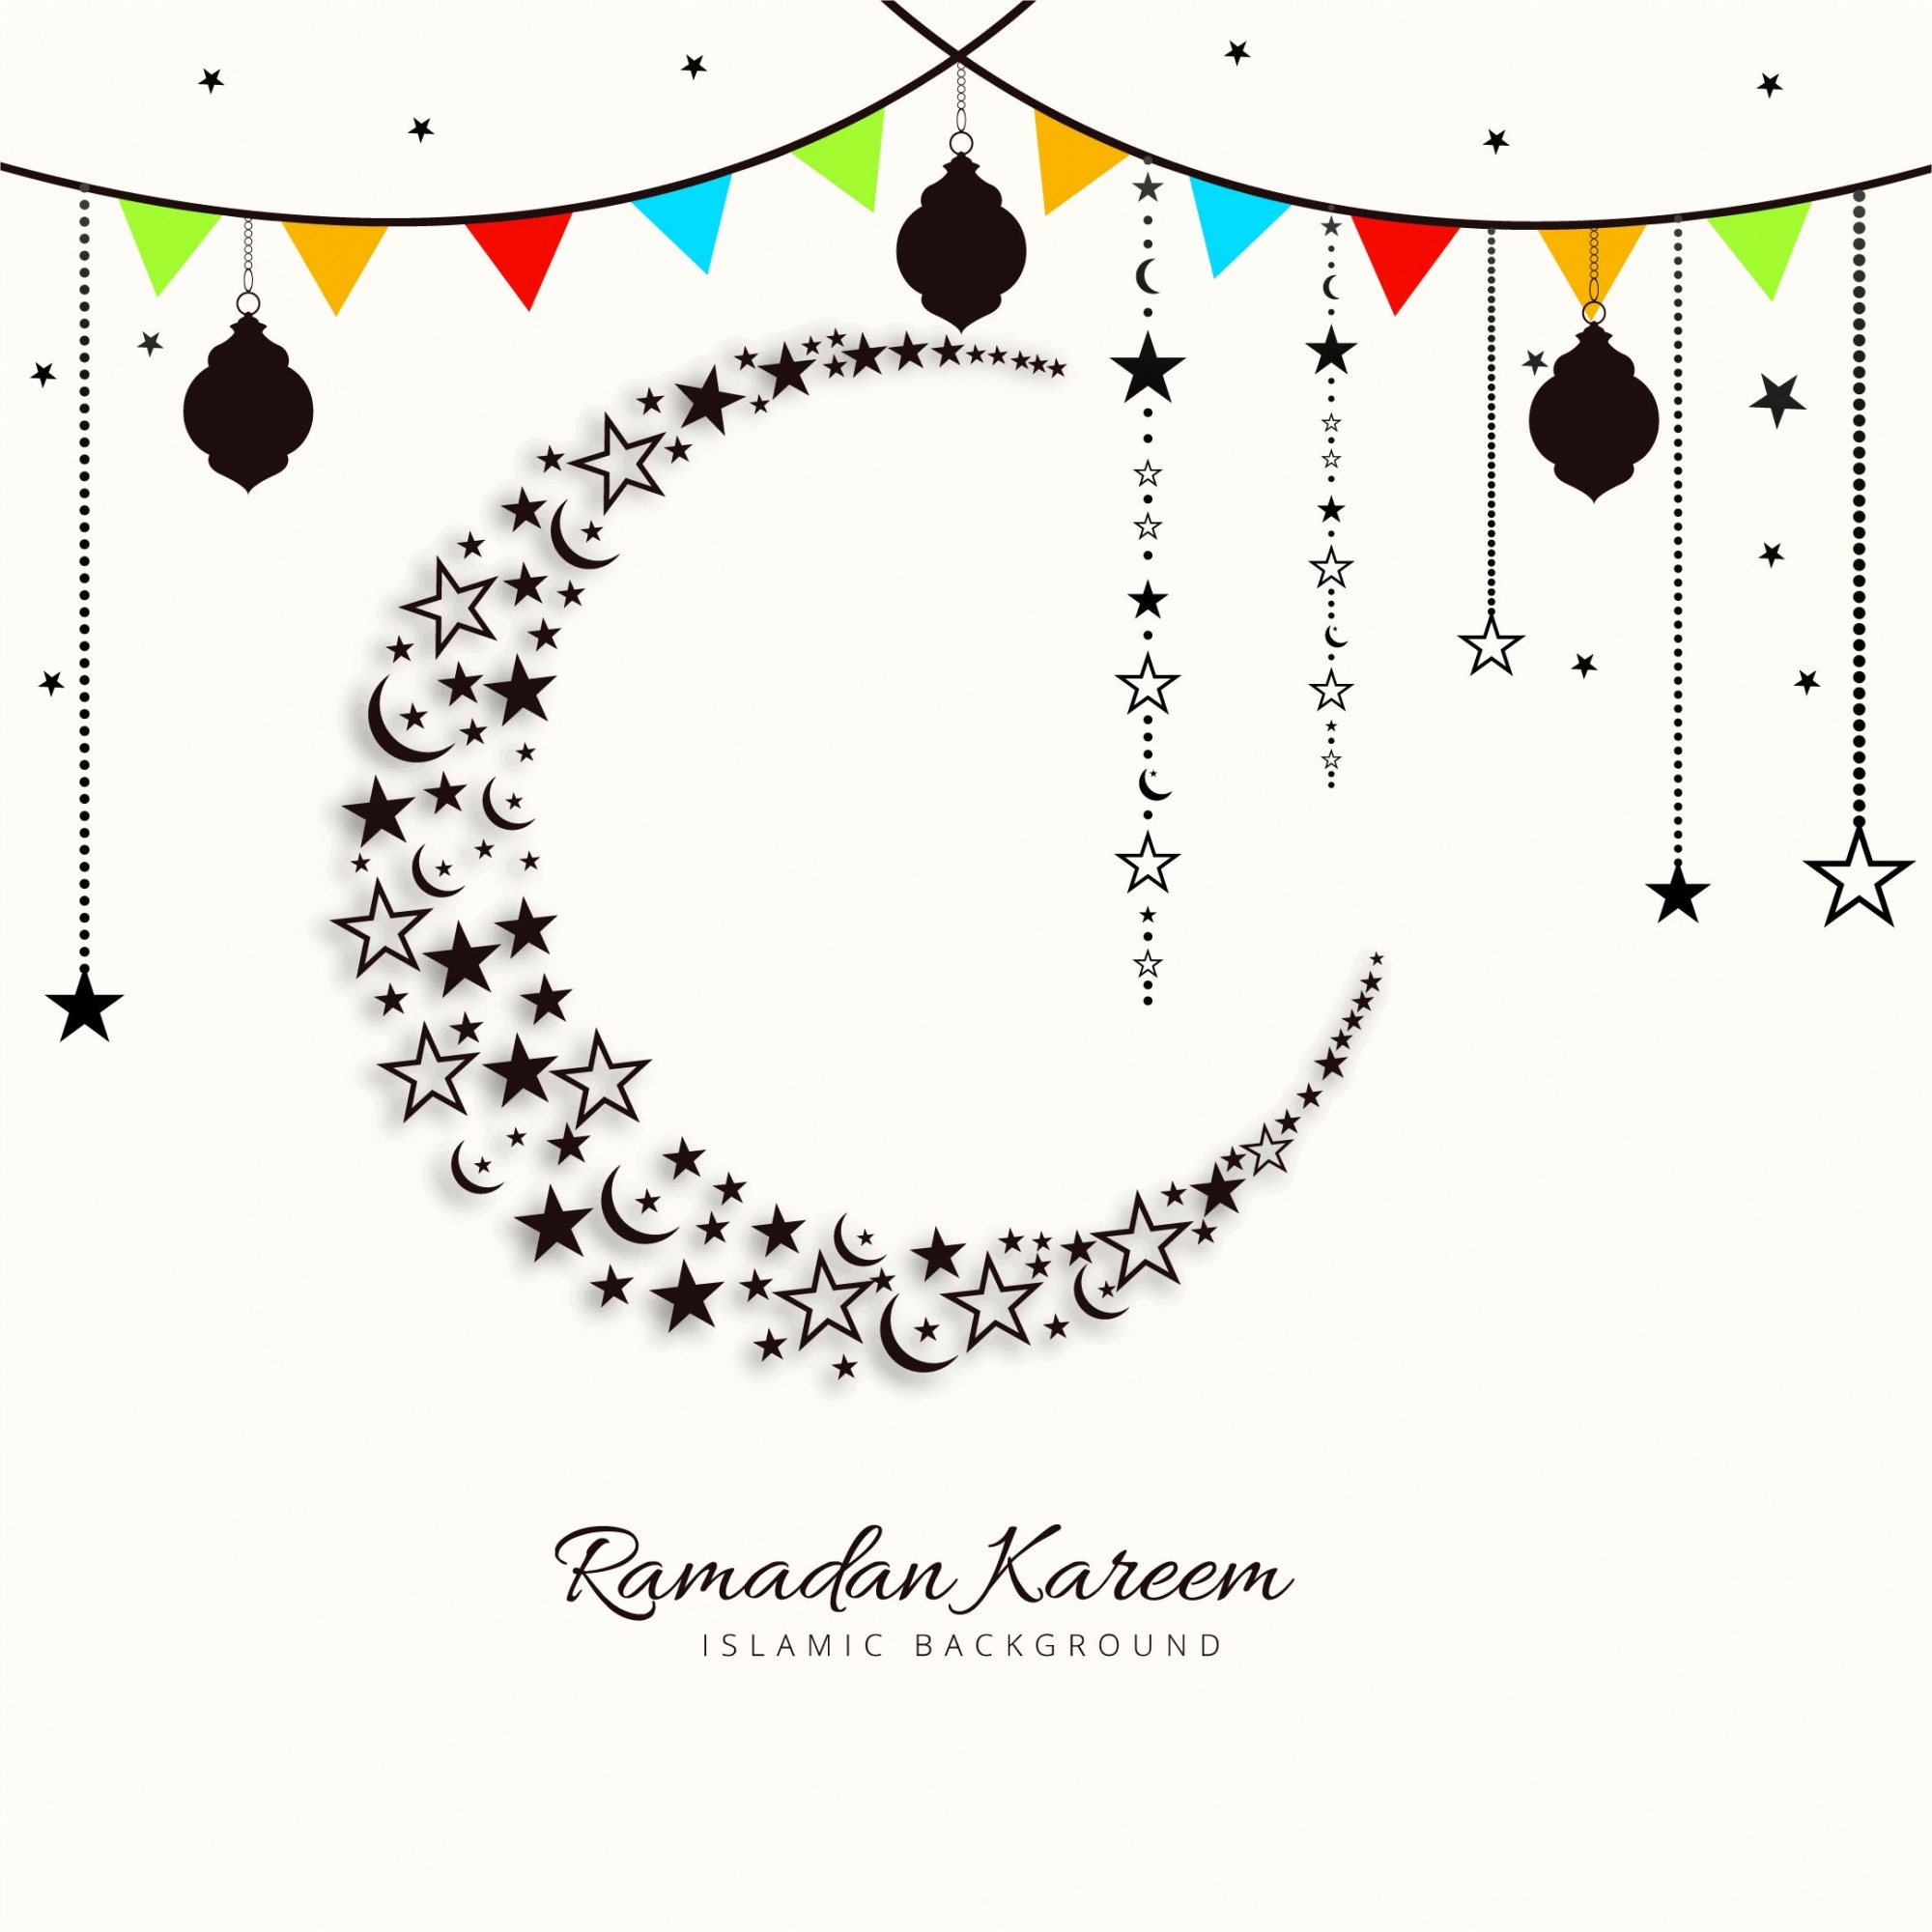 Festive ramadan kareem illustration